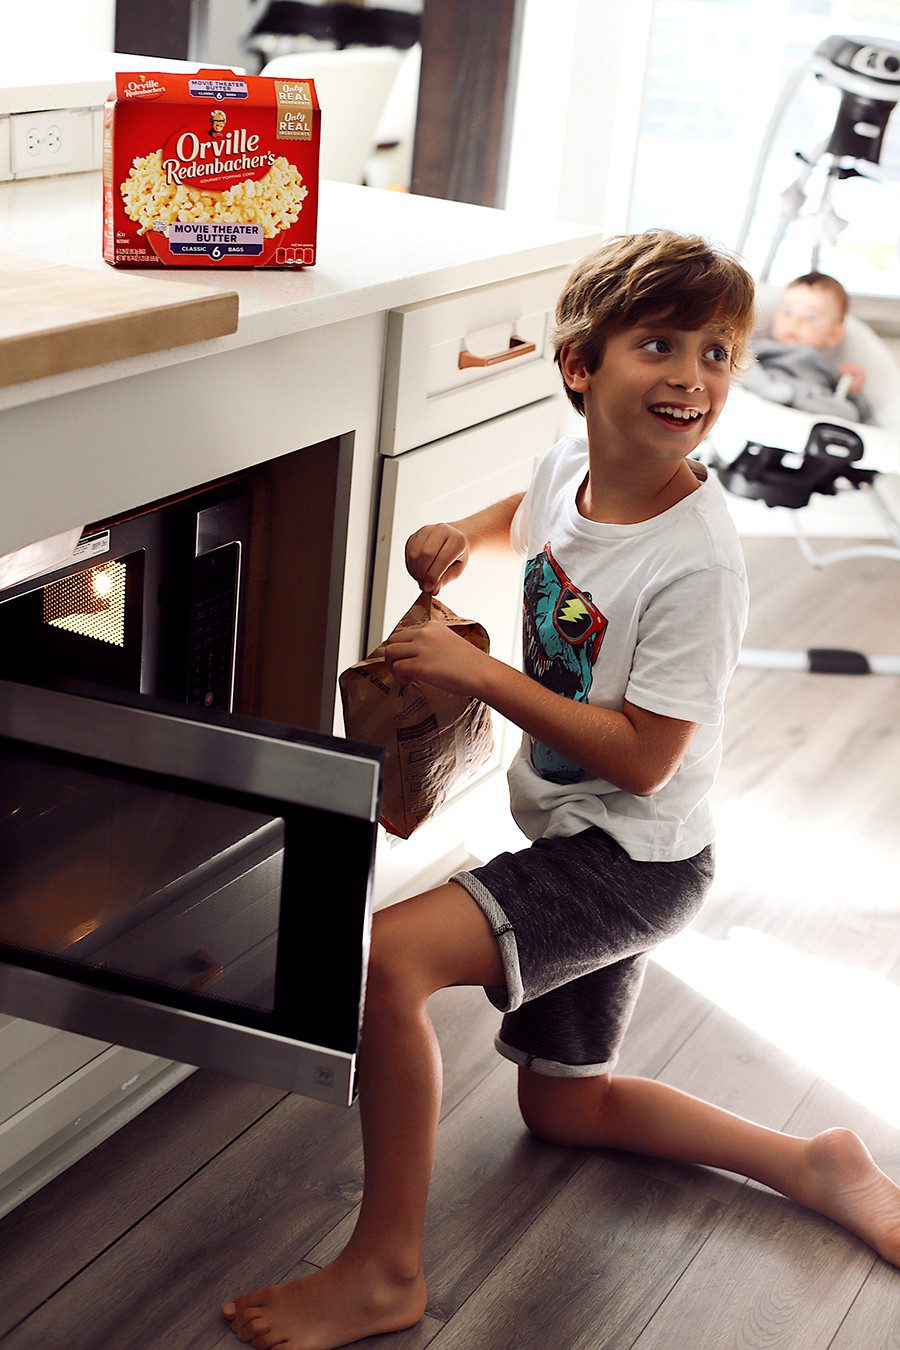 10 Popcorn Games for a Great Family Fun Night | Family Fun Night by popular Florida lifestyle blog, Fresh Mommy Blog: image of a boy holding a bag of Orville Redenbacher's microwave popcorn next to a open microwave.